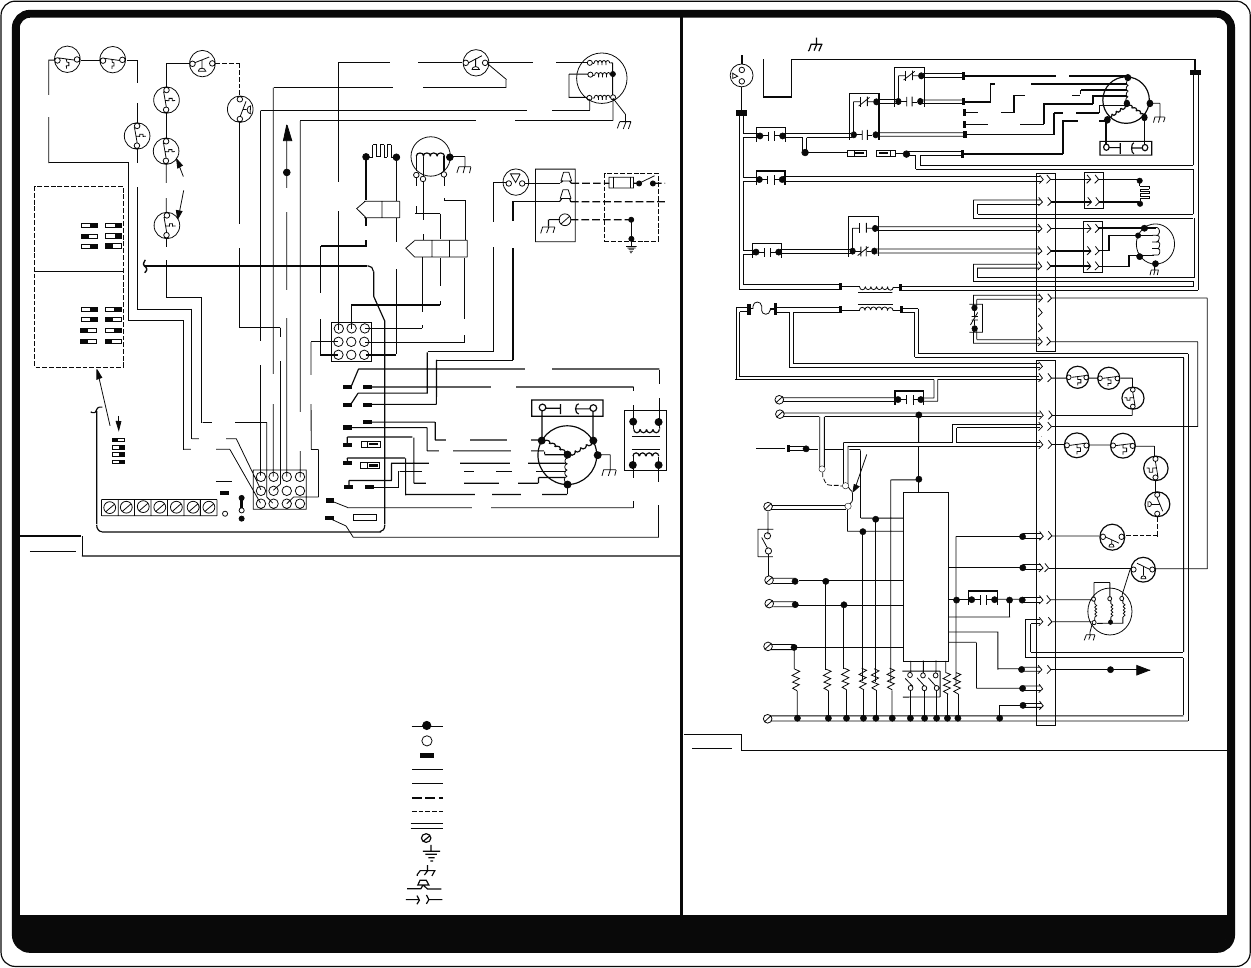 c2b73d22 c45f 43df a574 b6e707ea0cc7 bg8 bryant furnace diagram 100 images bryant gas heater wiring bryant air conditioner wiring diagram at alyssarenee.co